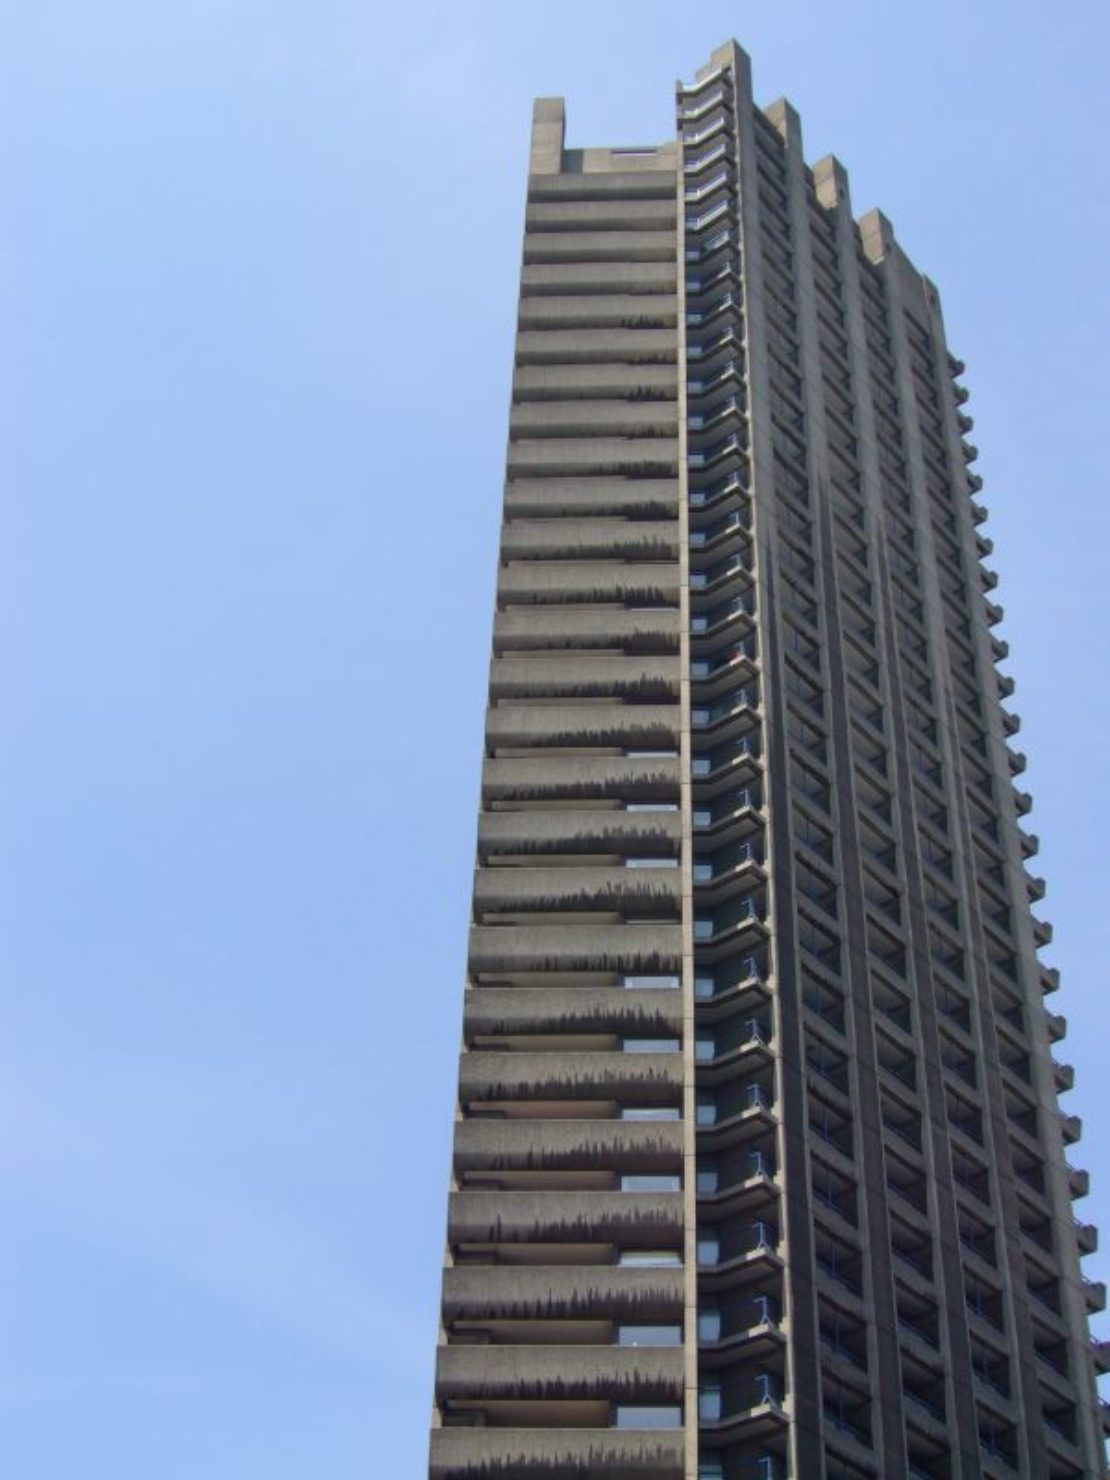 One of the residential towers in the Barbican, London